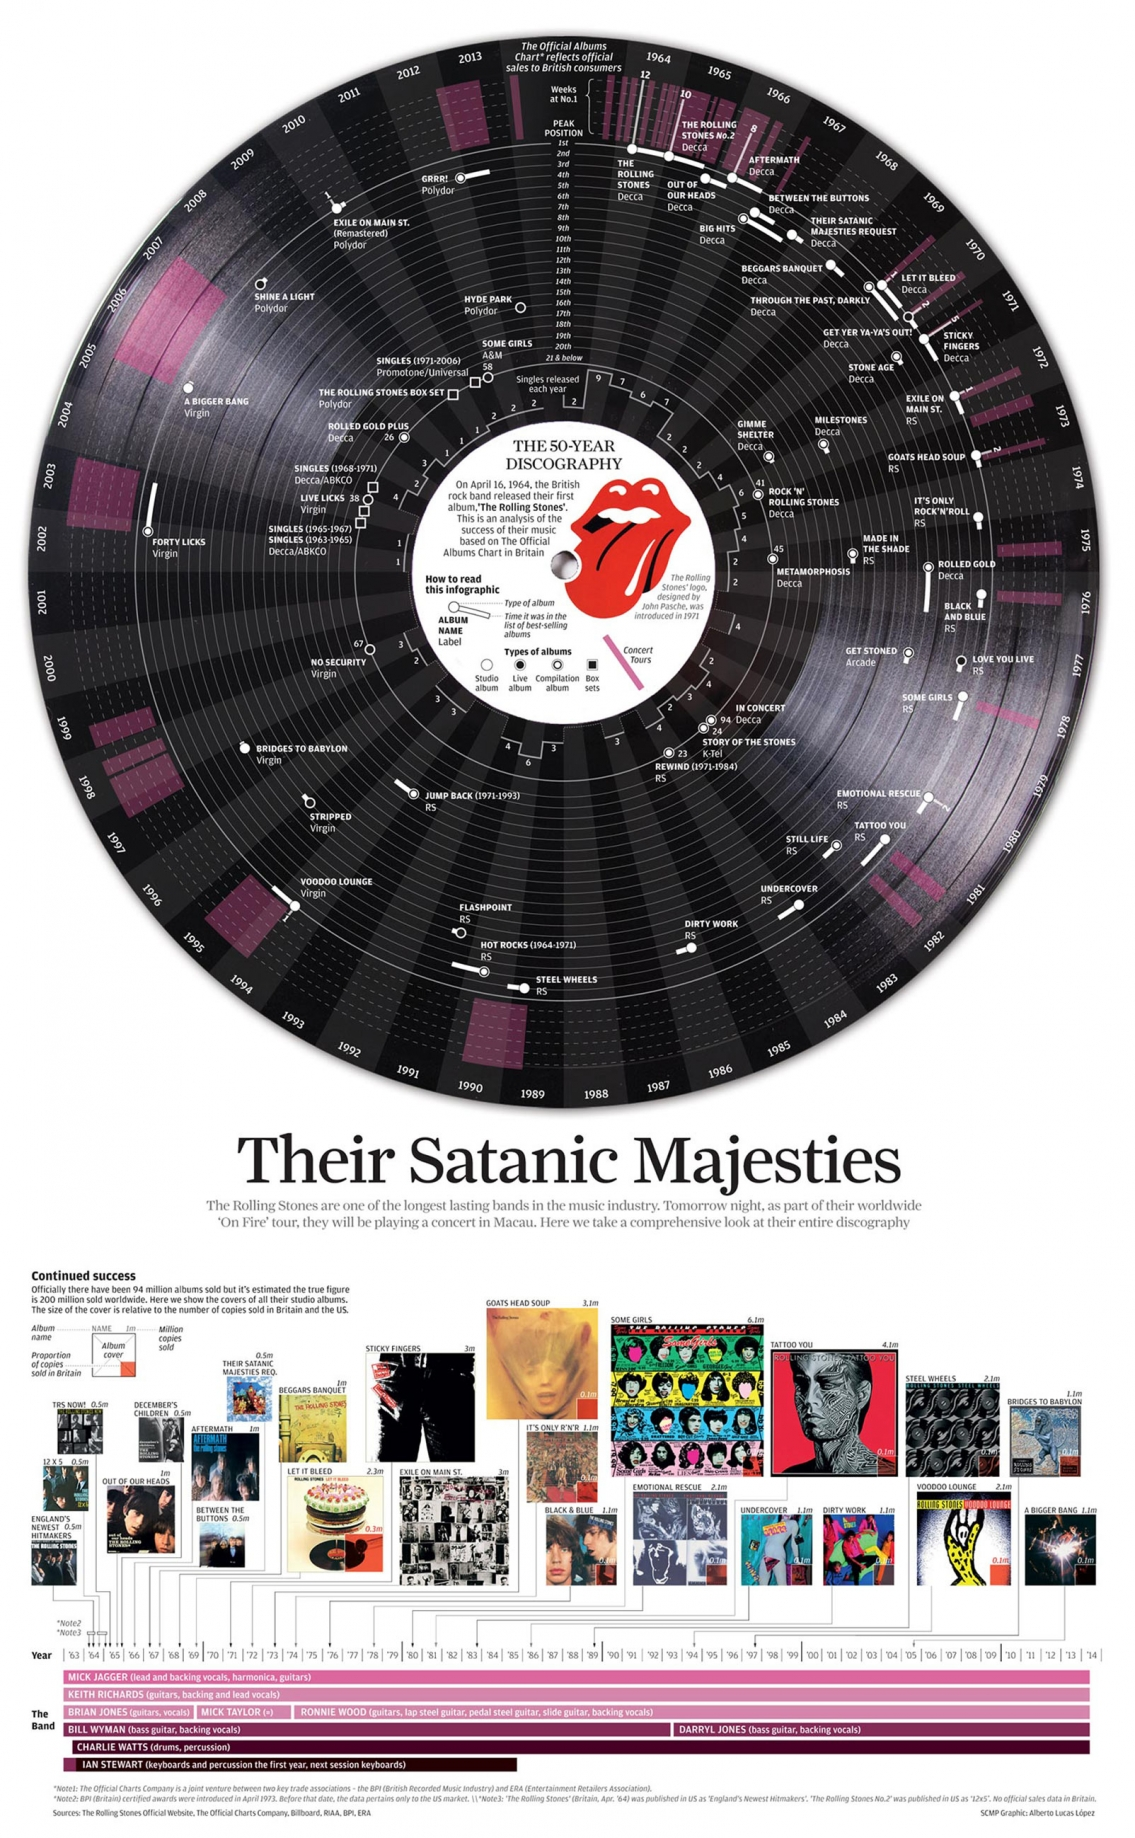 50-Year Discography of The Rolling Stones Music Infographic